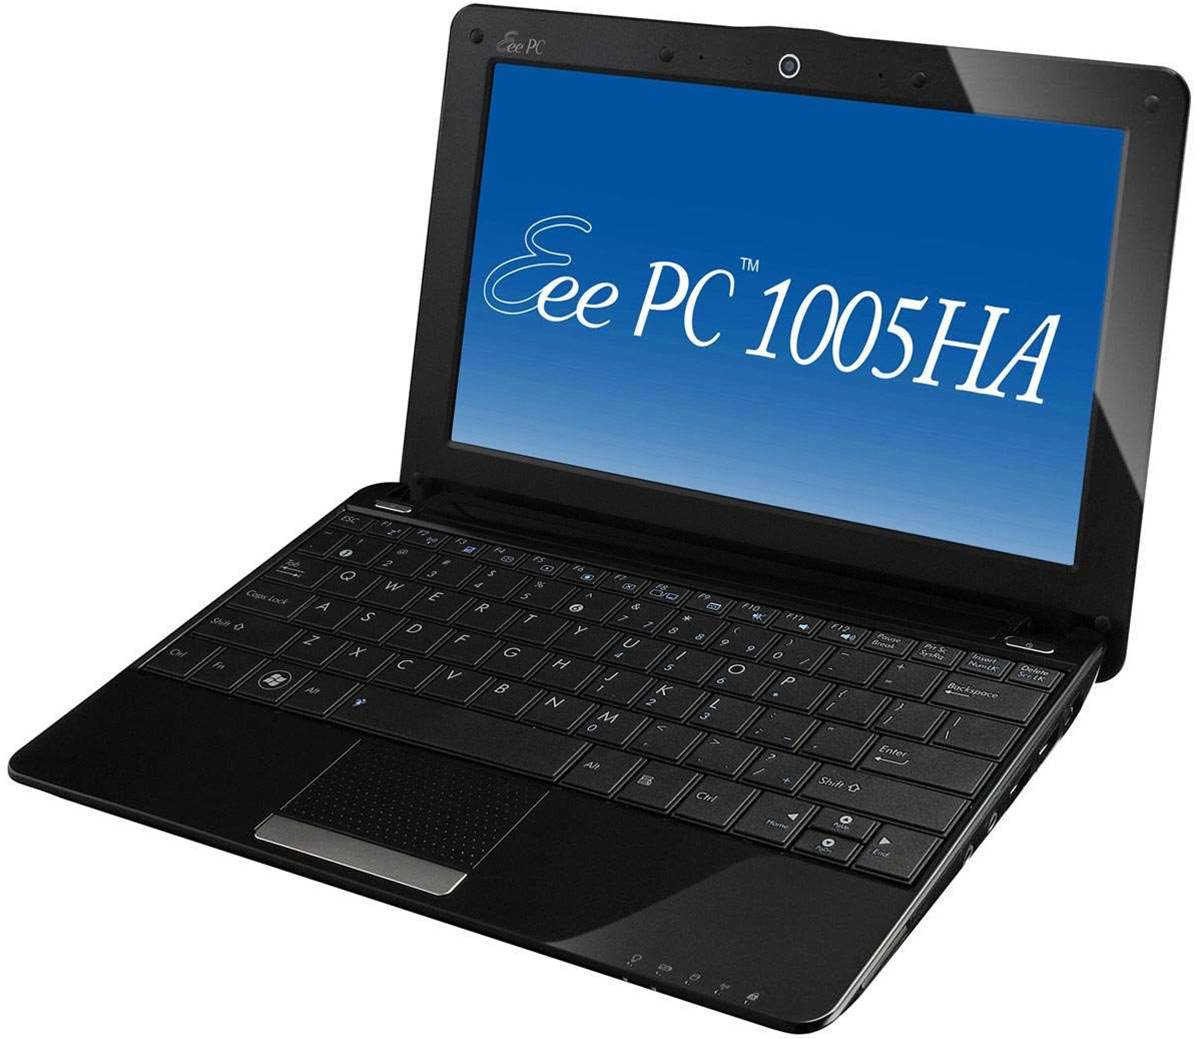 Asus Eee PC 1005HA, solid battery life and reasonable value